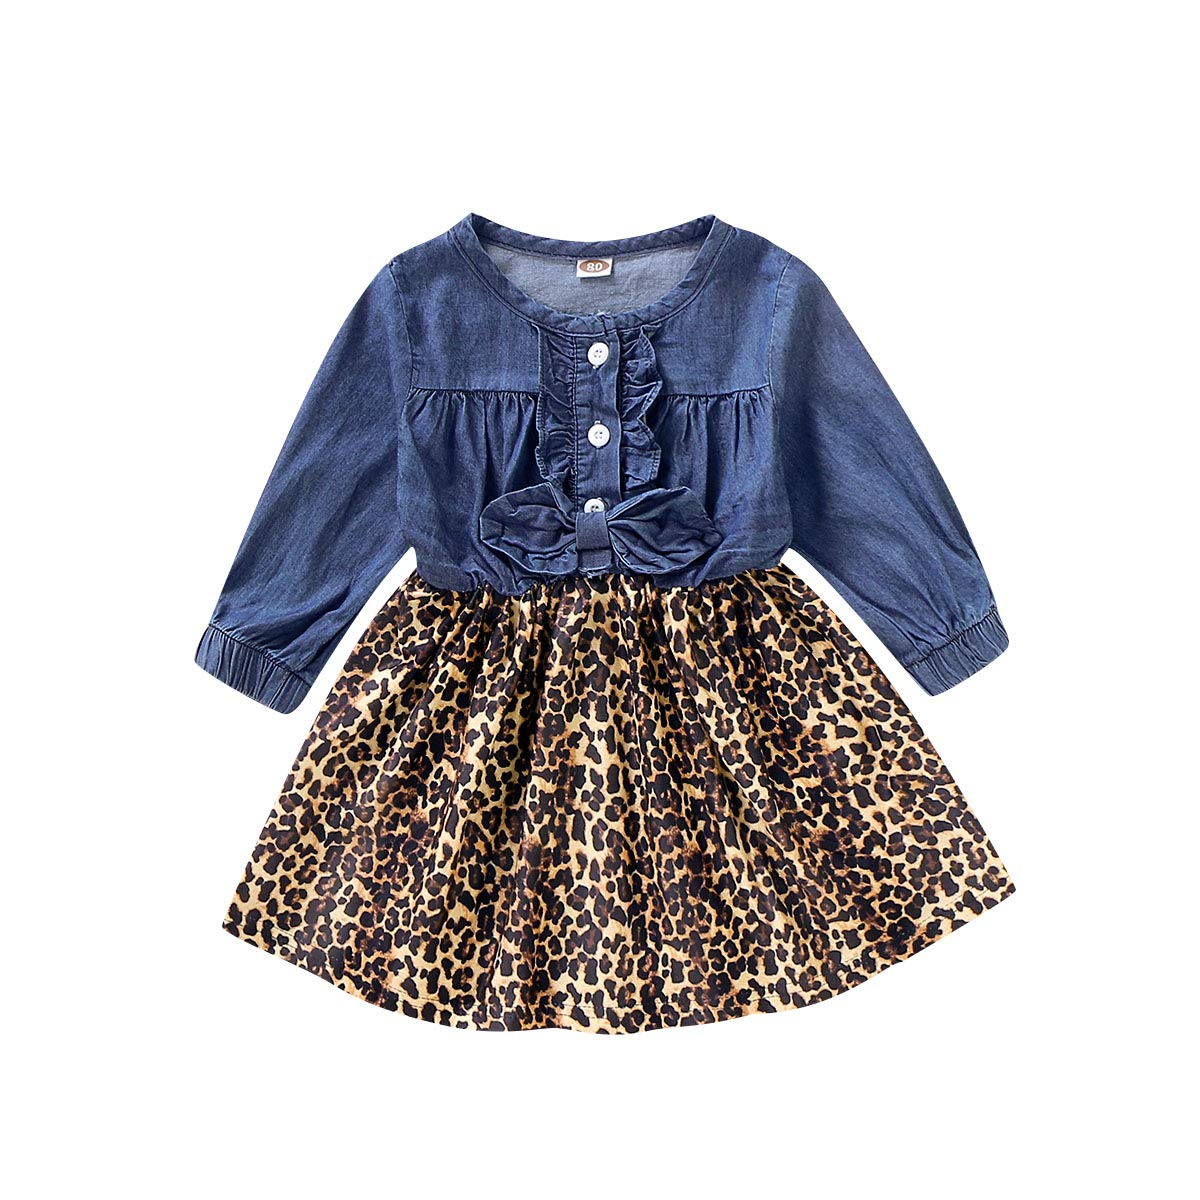 Baby Girl Clothes Party Dress Kids Denim Bowtie Leopard Splicing Sassy Dress Princess Overall Outfits Autumn